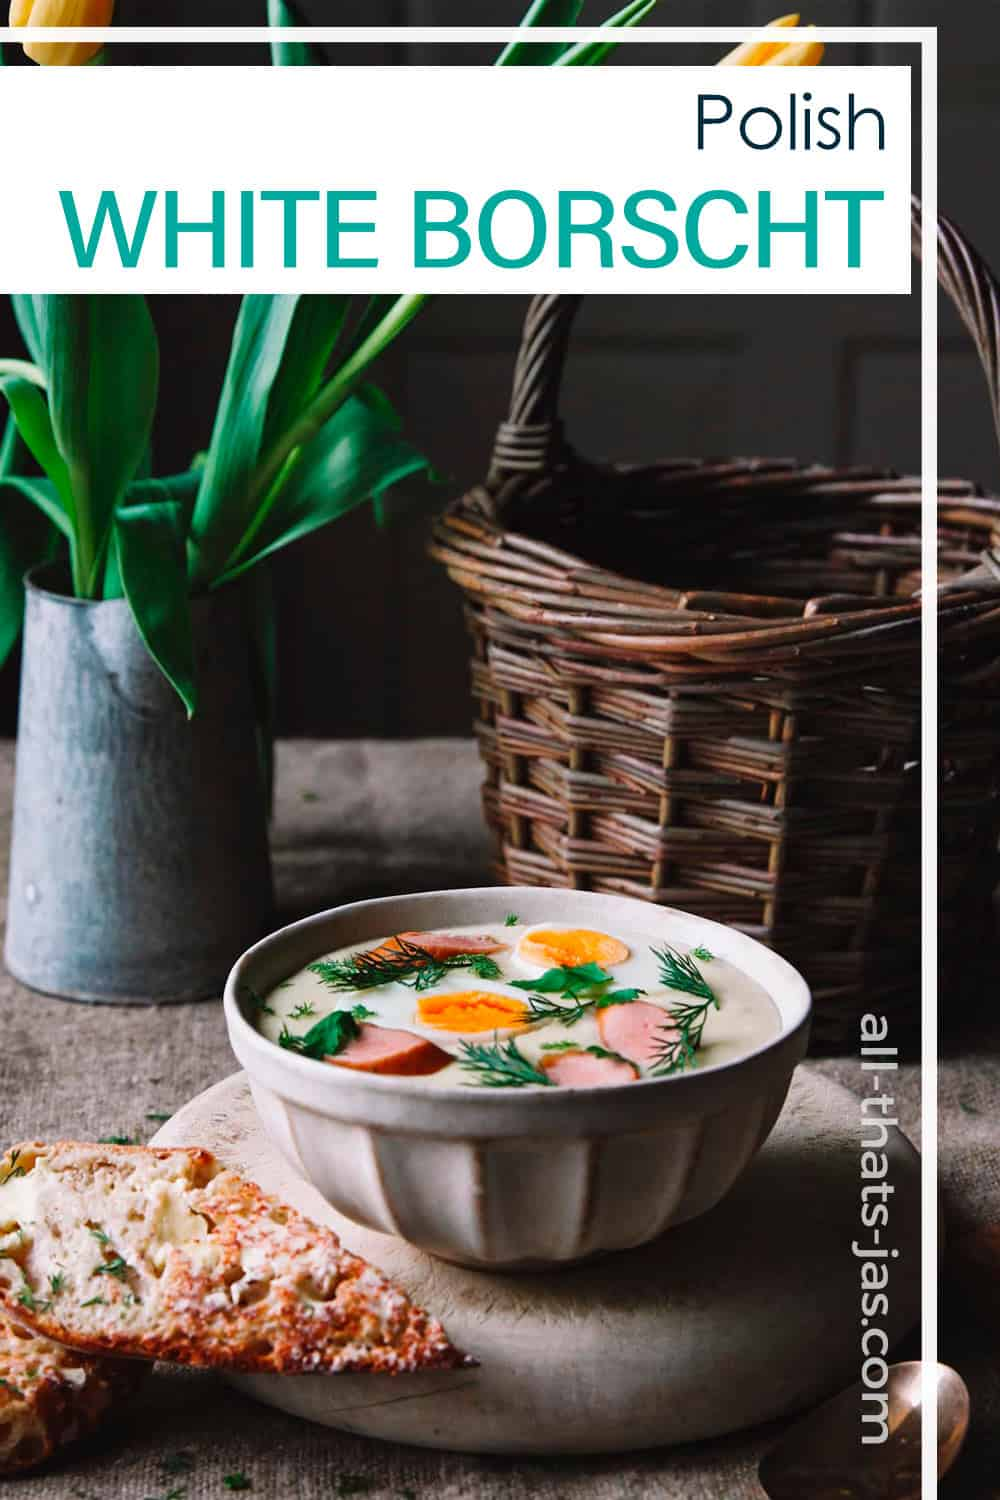 A serving of white borscht with eggs and sausage served with bread on a table wit Easter setting and a text overlay.